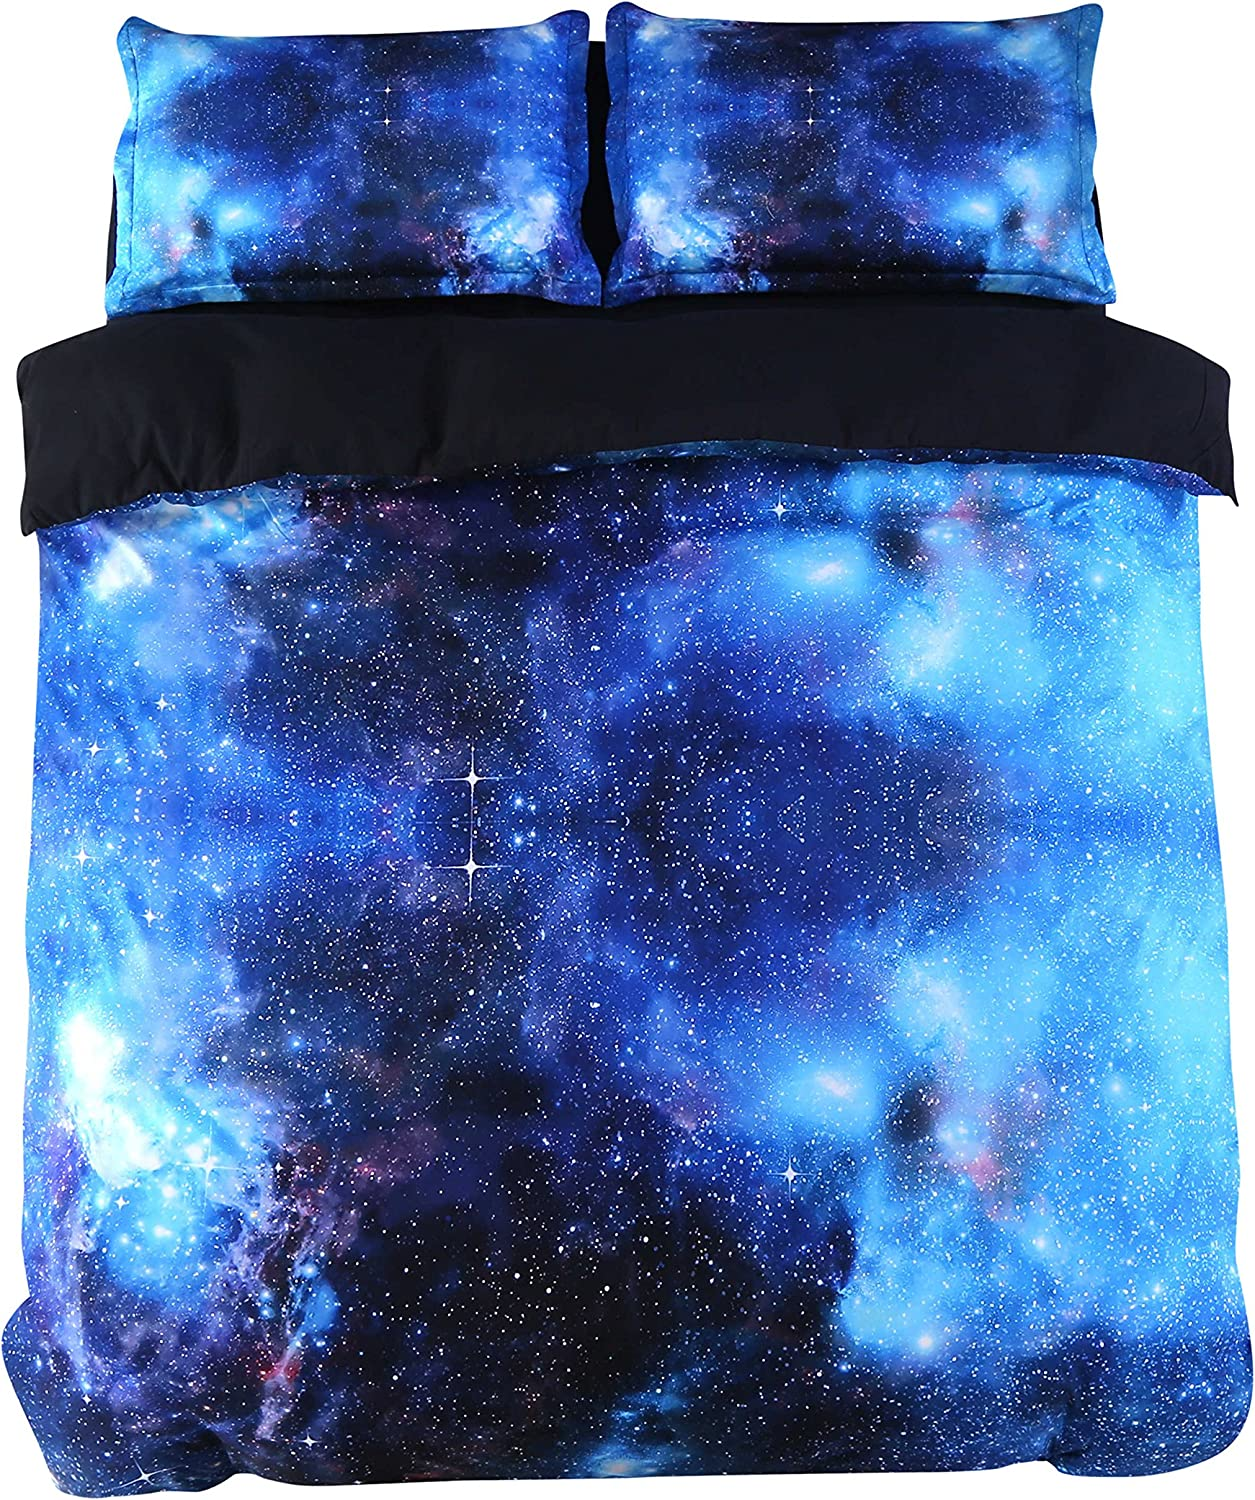 Alicemall Galaxy Bedding Full 4 Pieces Deep bluee Galaxy Duvet Cover Set Gorgeous Shining bluee Galaxy Outer Space Print 4-Piece Bedding Set (Full, bluee-4 pcs)